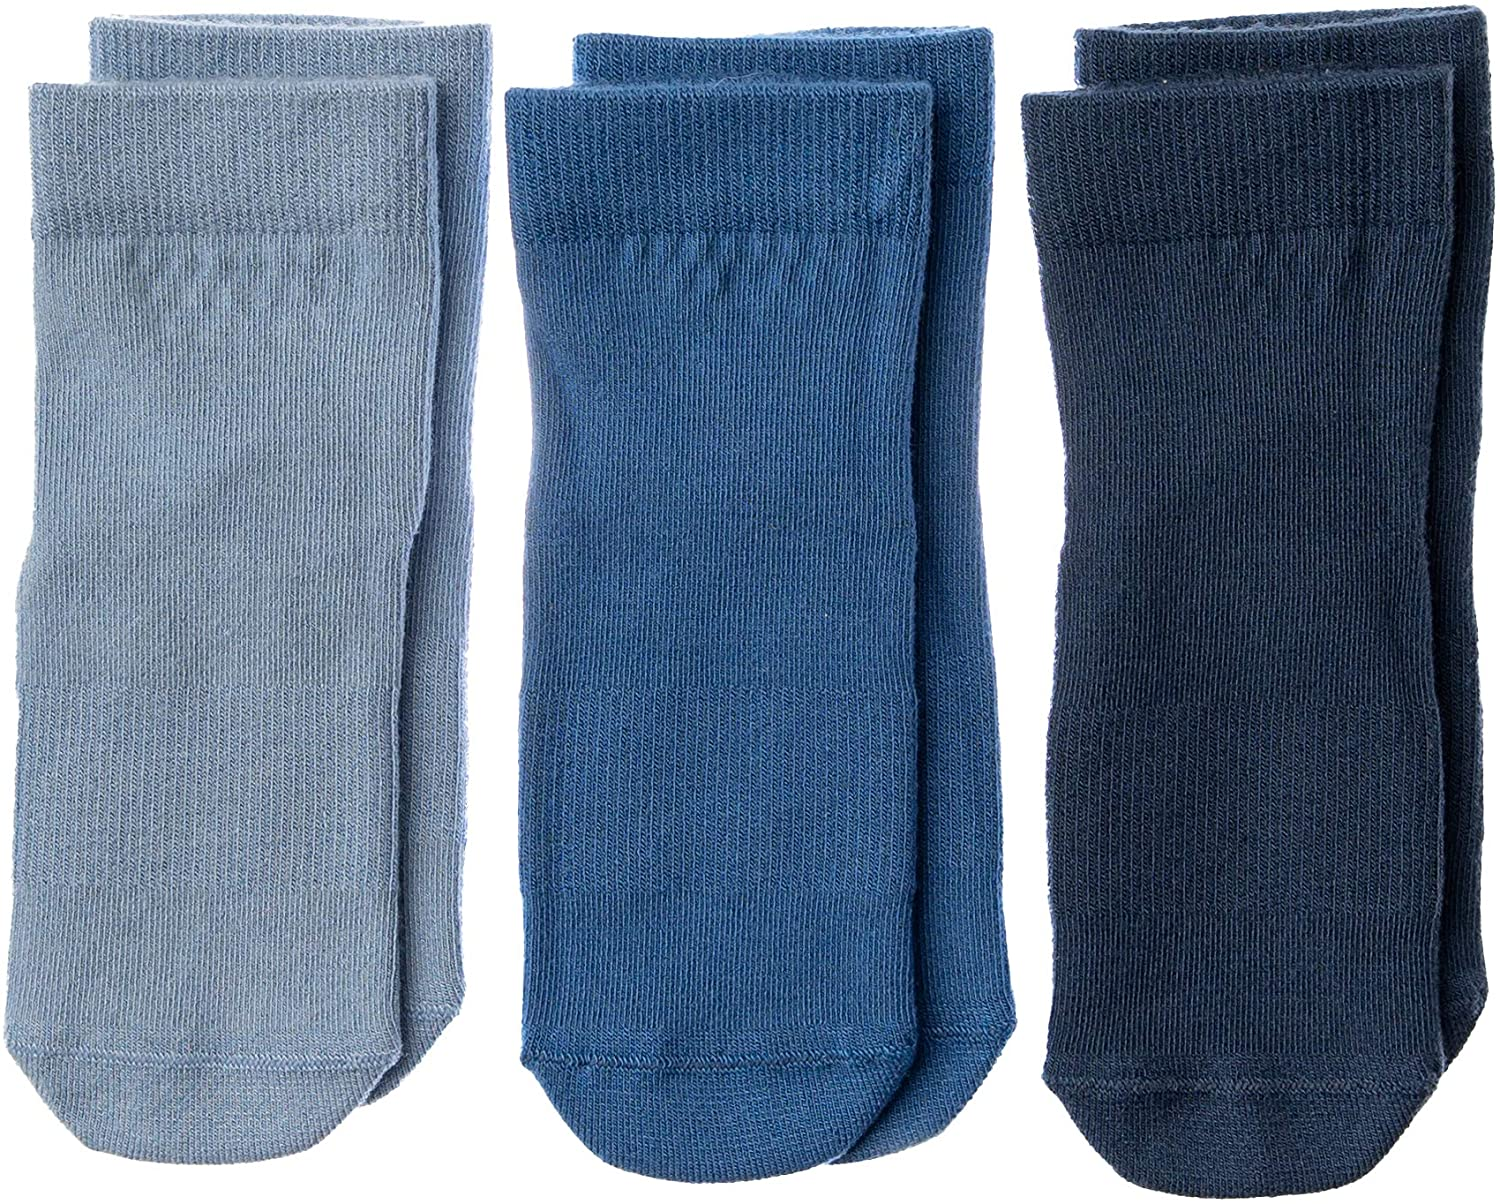 Squid Socks Colby boy unisex girl Ranking TOP7 bamboo socks co don't that Quality inspection